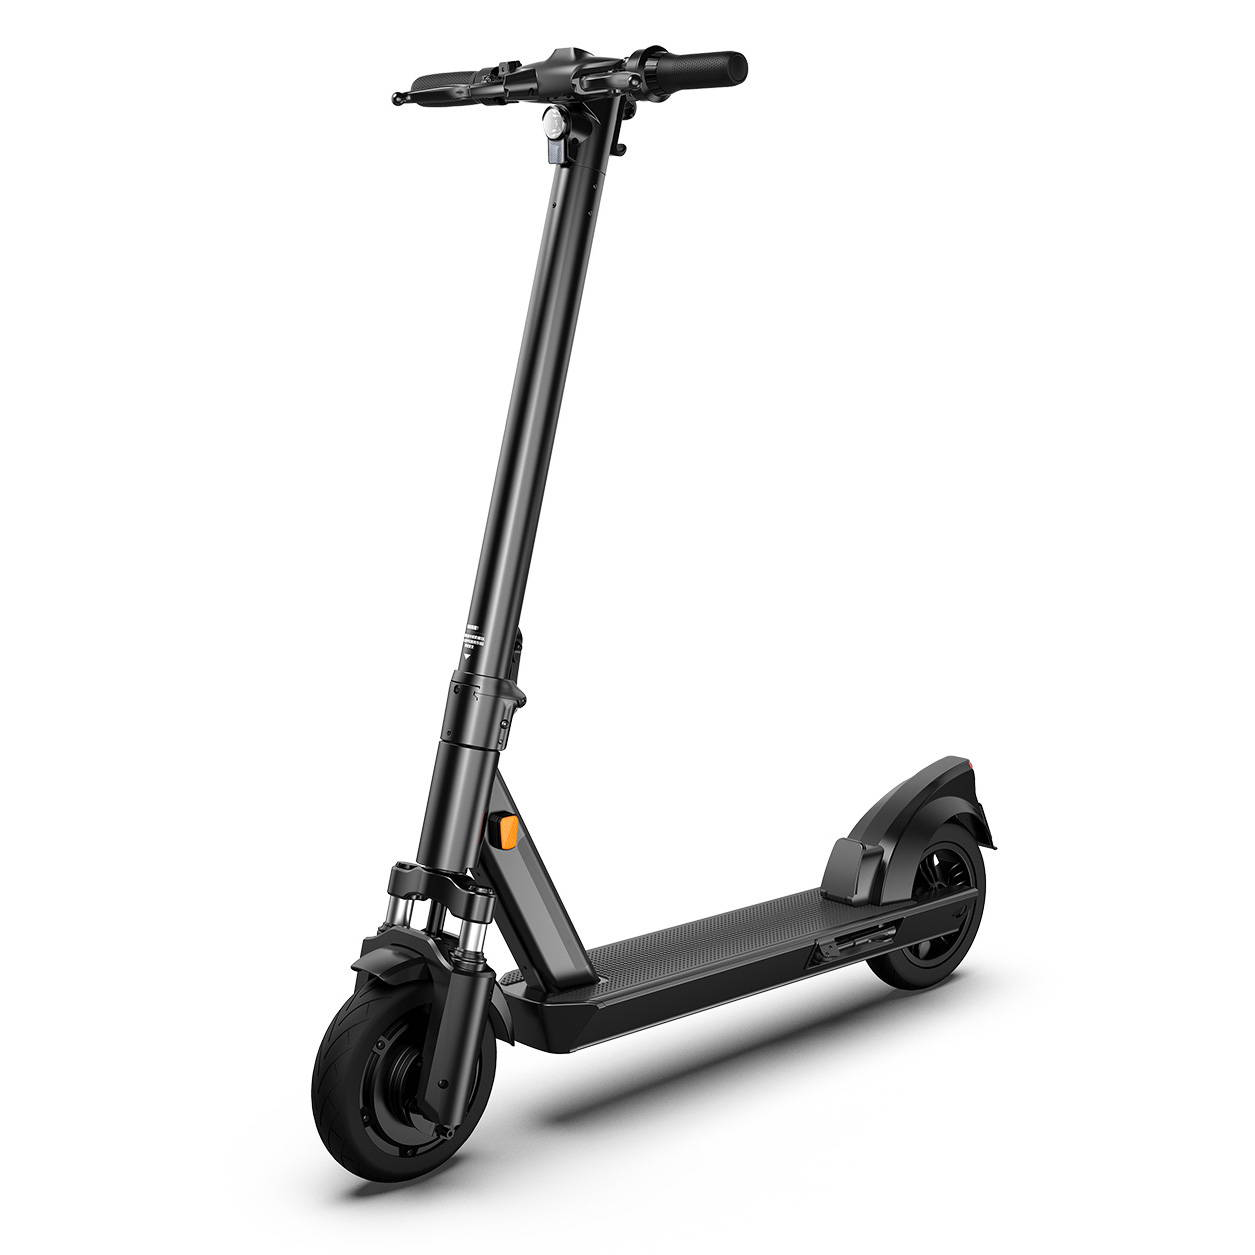 Okai-electric-scooter-&-electric-bike-manufacturer-es200-side-view-square